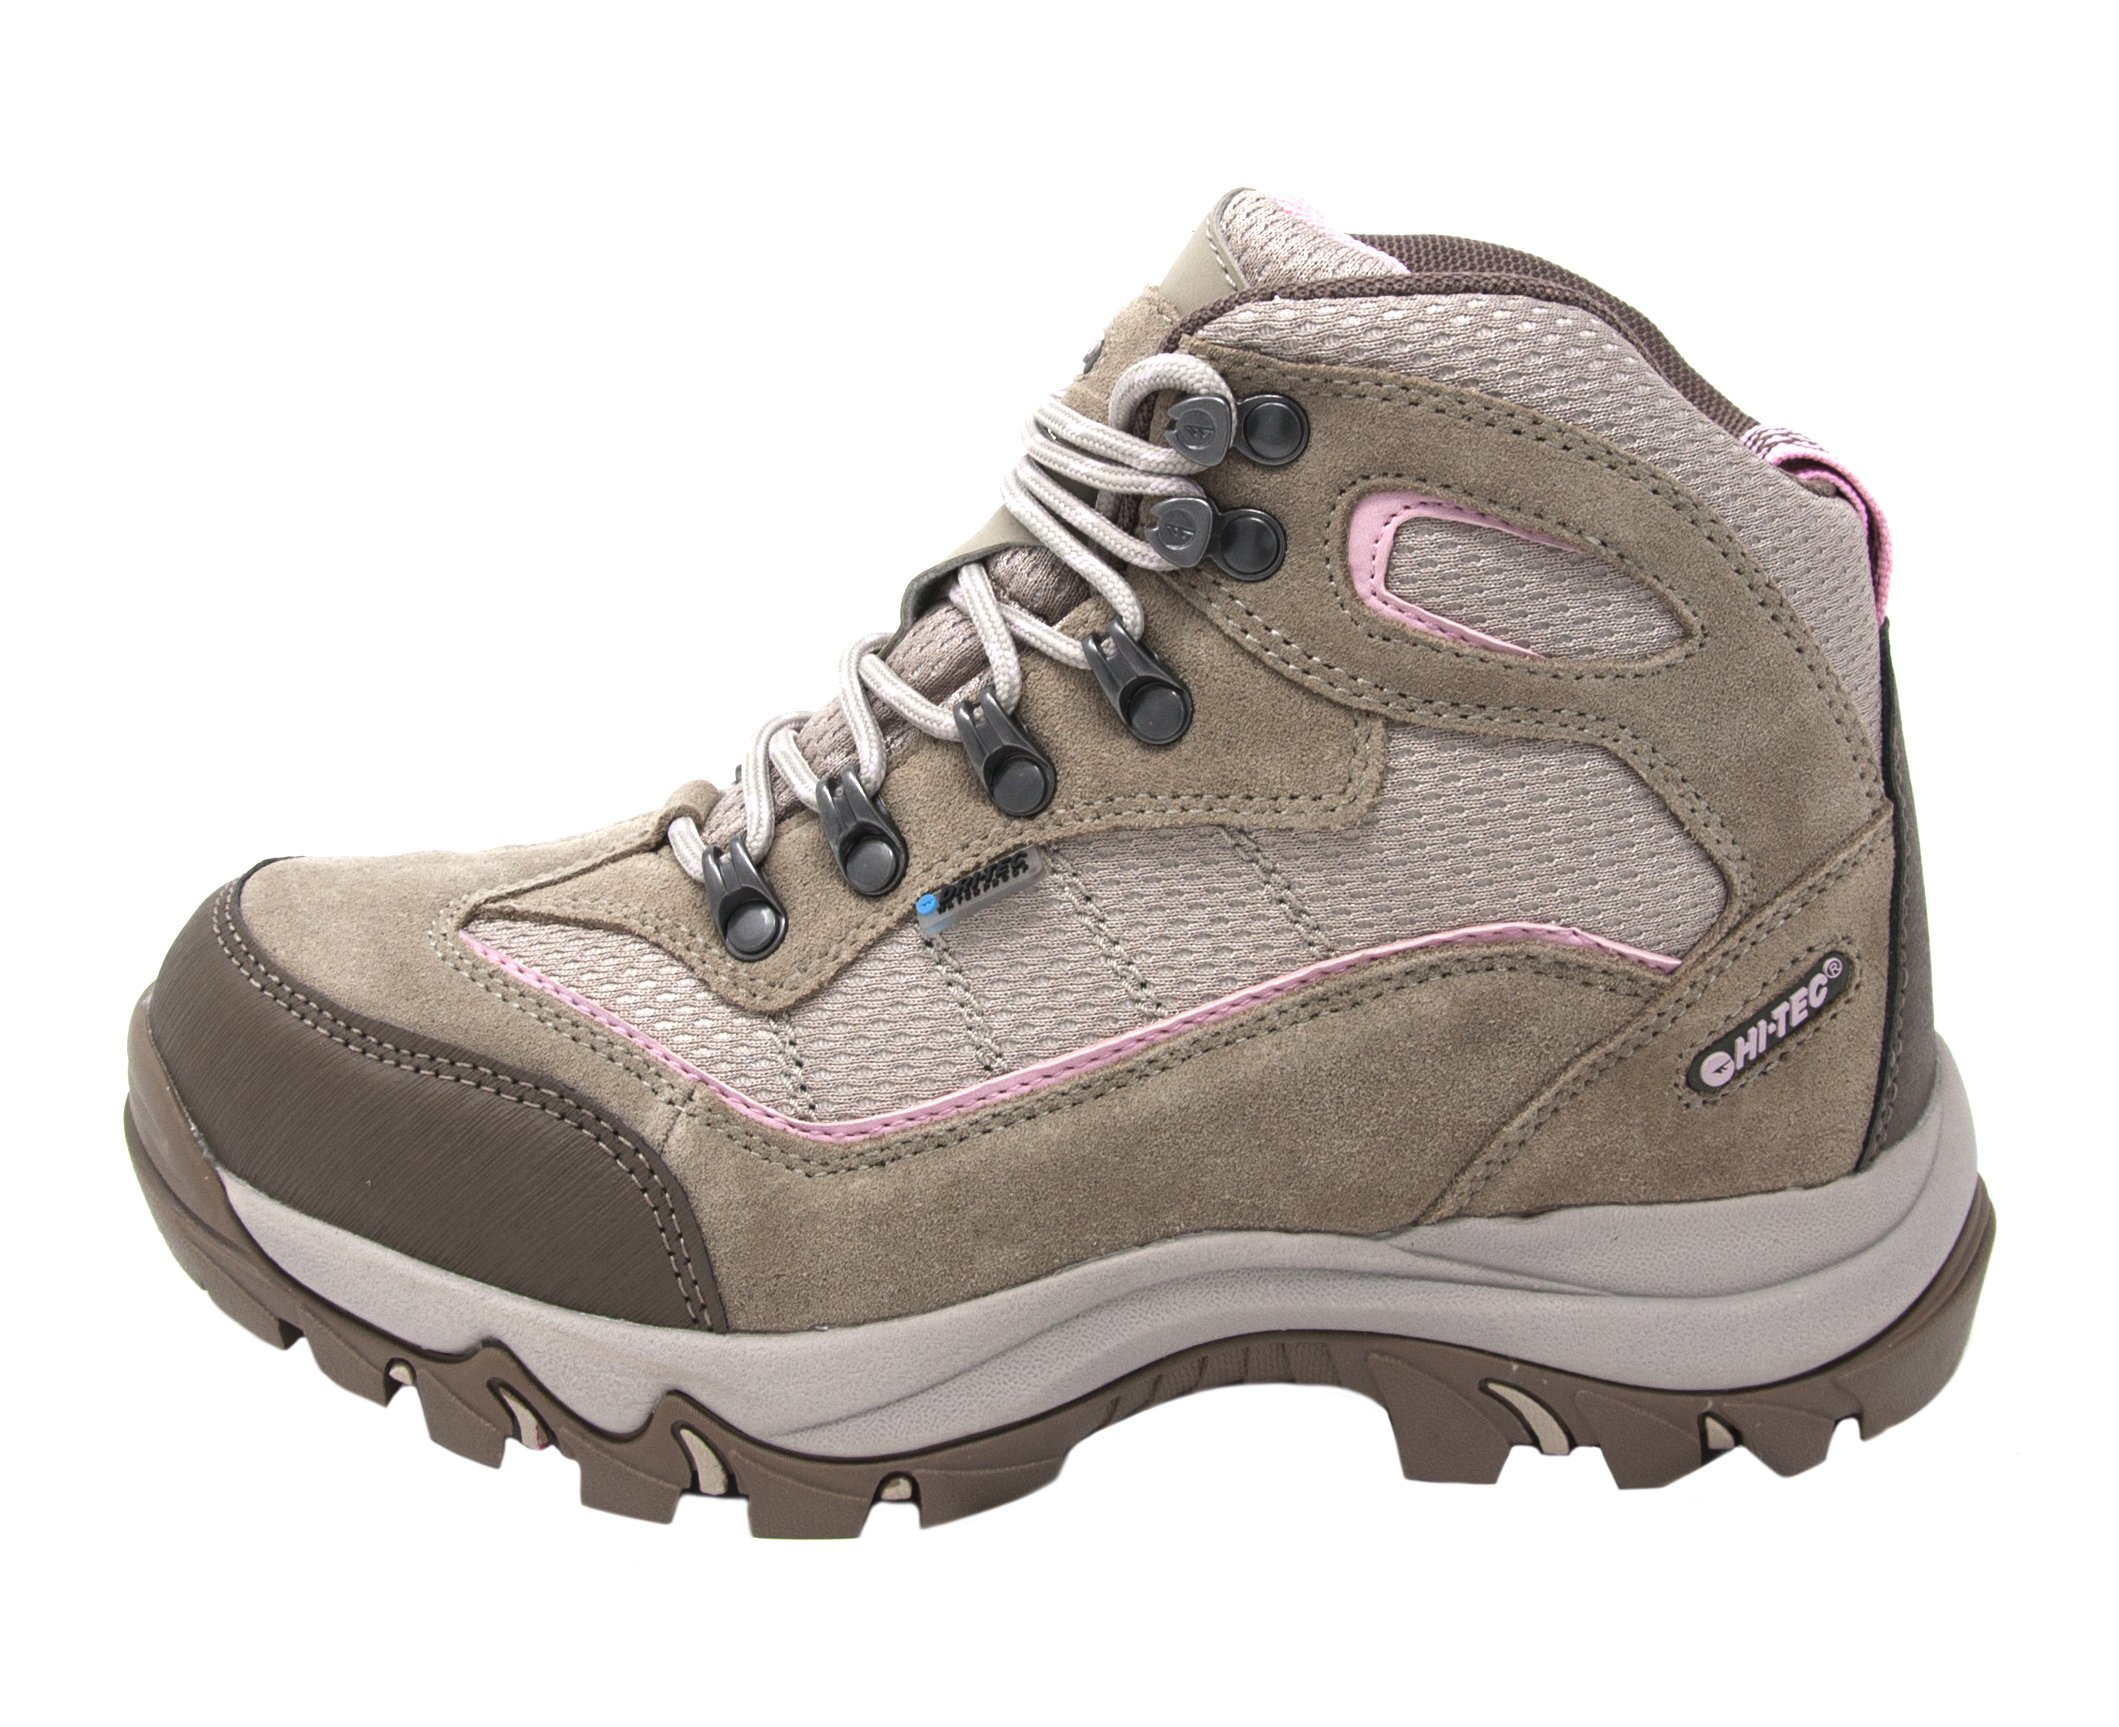 Hi-Tec Women's Skamania Mid-Rise Waterproof Hiking Boot (7.5 B(M) US, Natural/Pink)